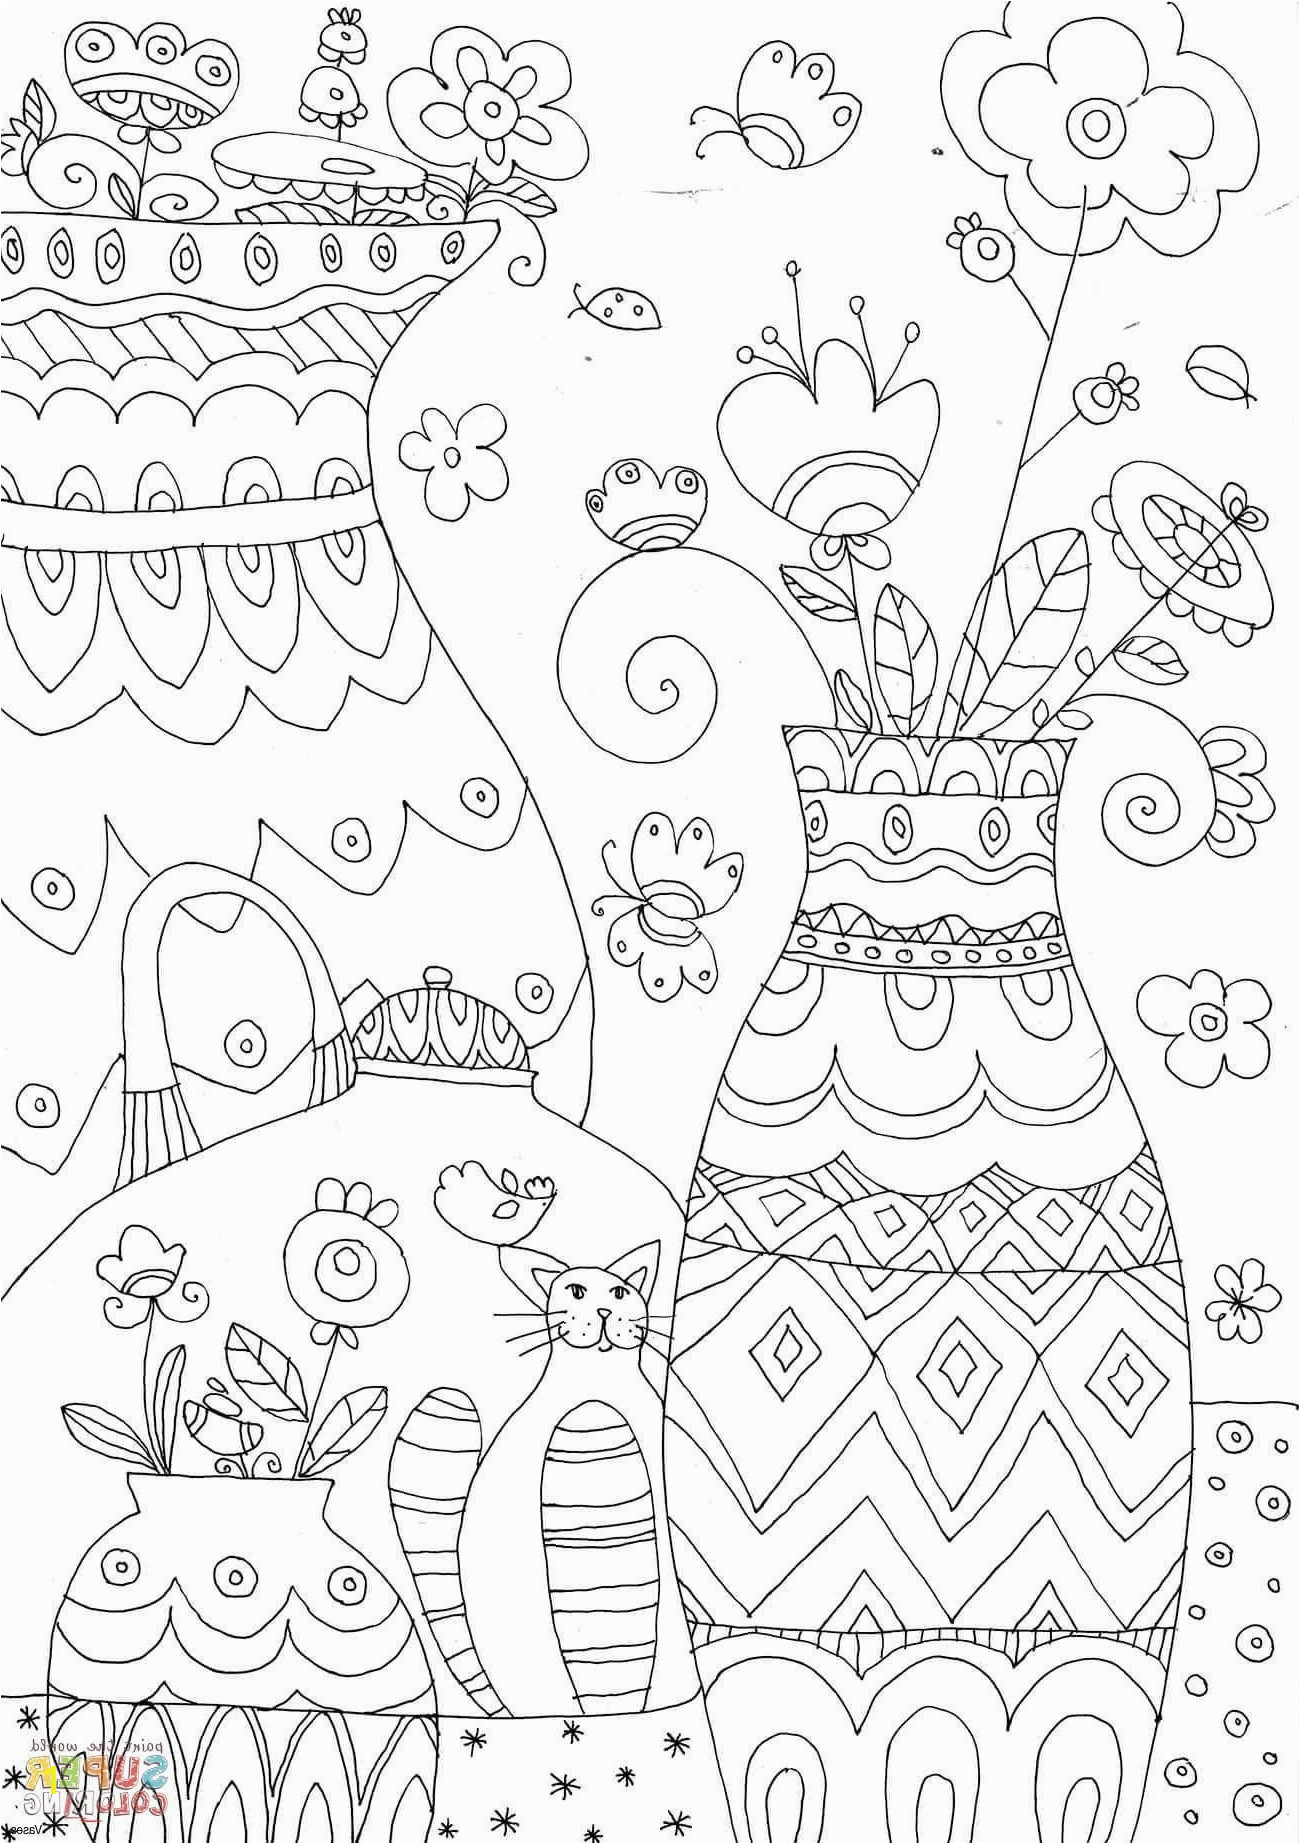 mewtwo pokemon coloring page cool photography picasso coloring pages residence update cool od dog free with regard of mewtwo pokemon coloring page